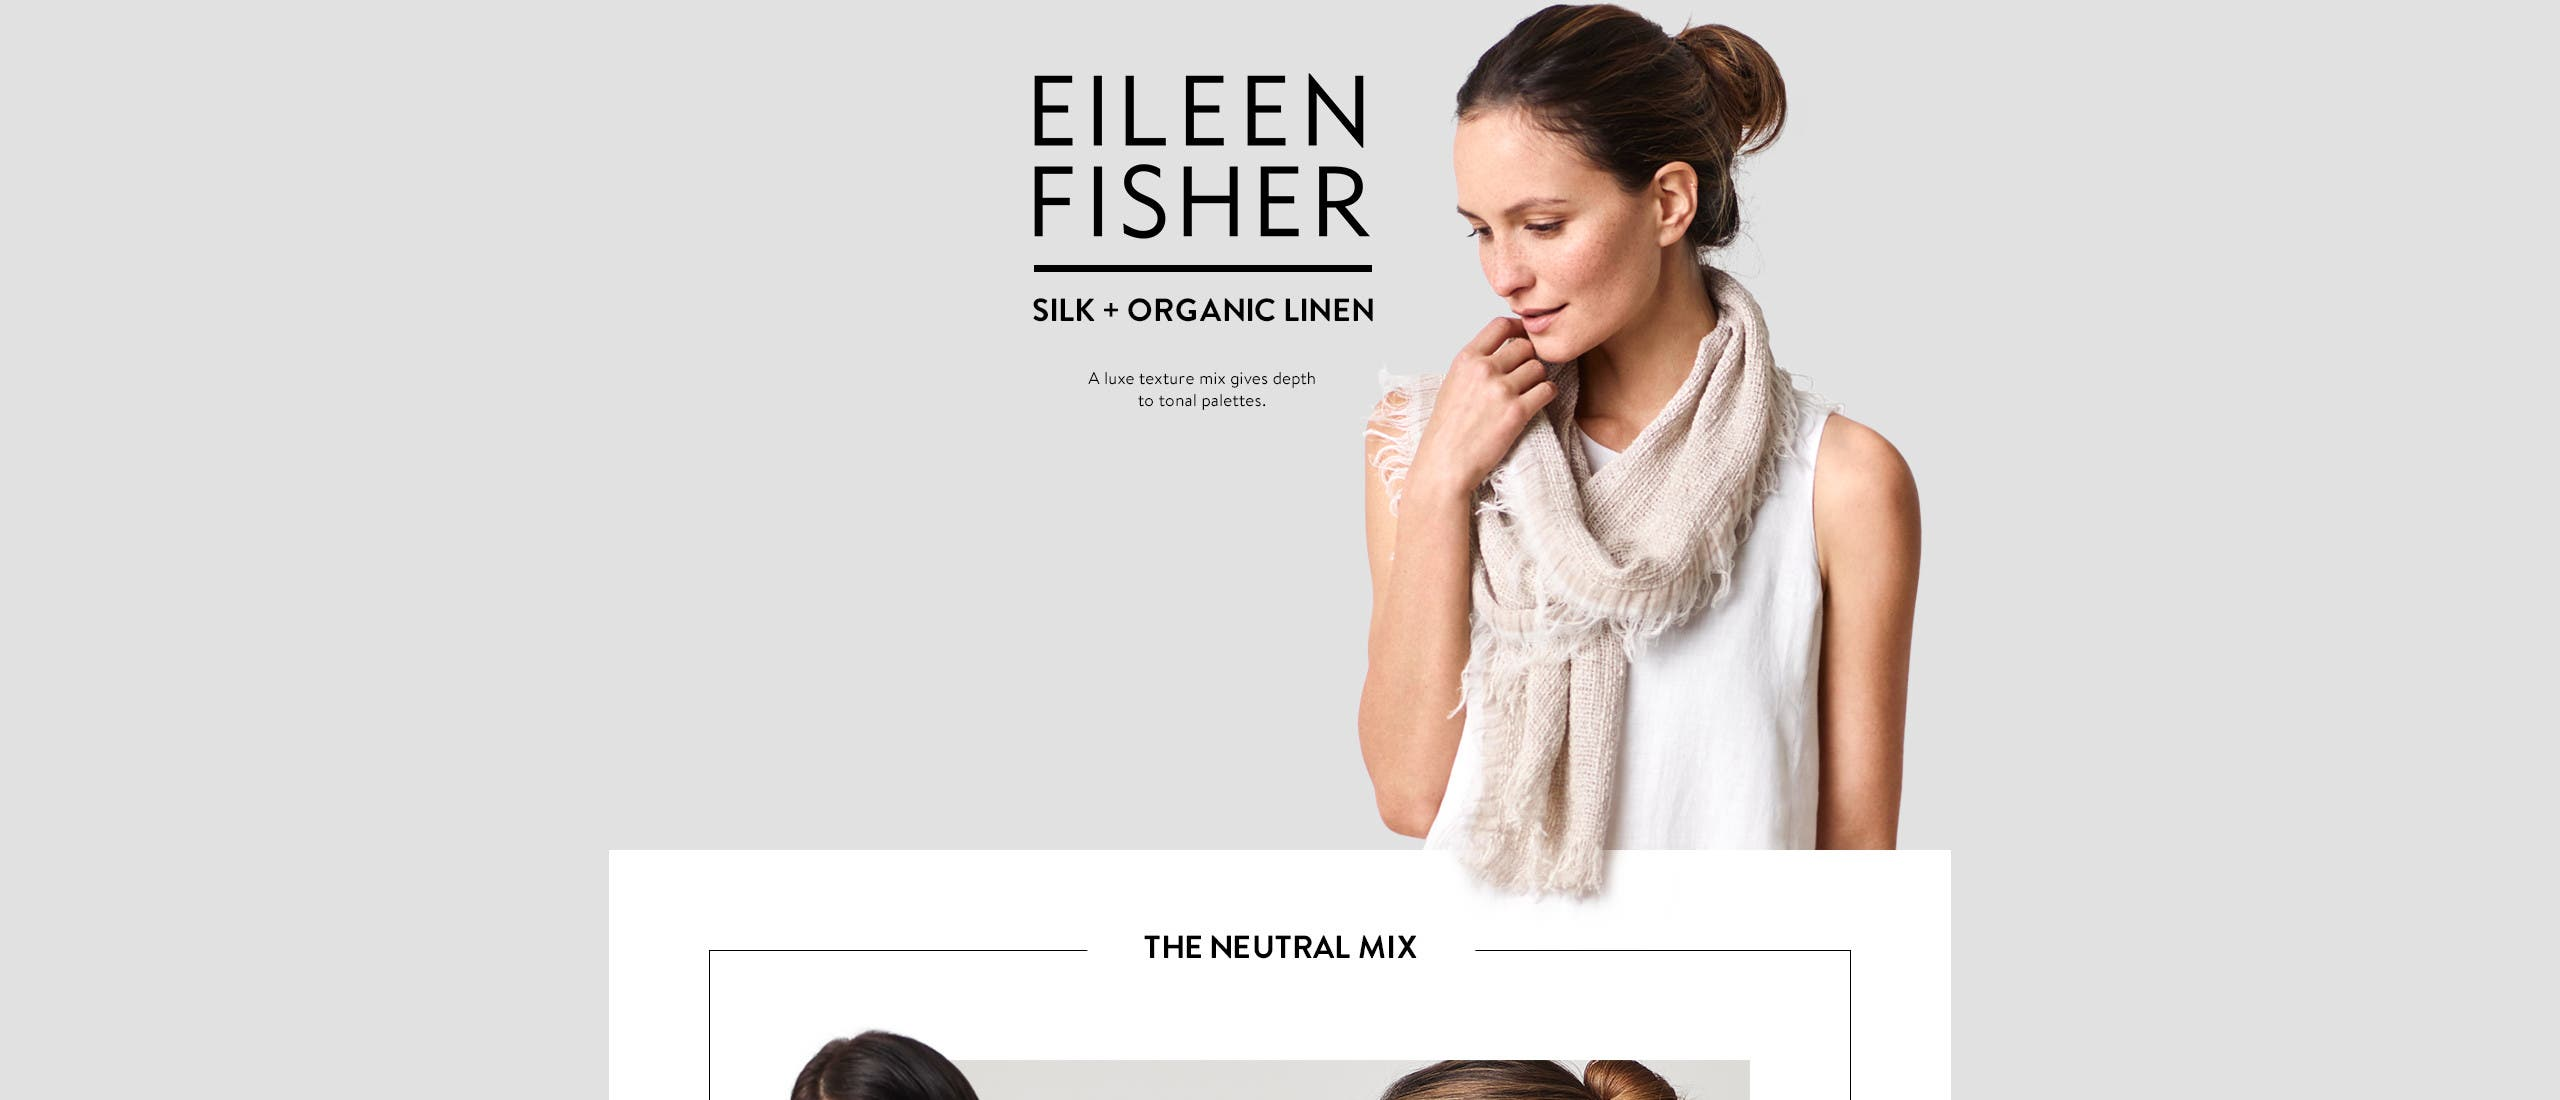 Eileen Fisher: linen and silk.